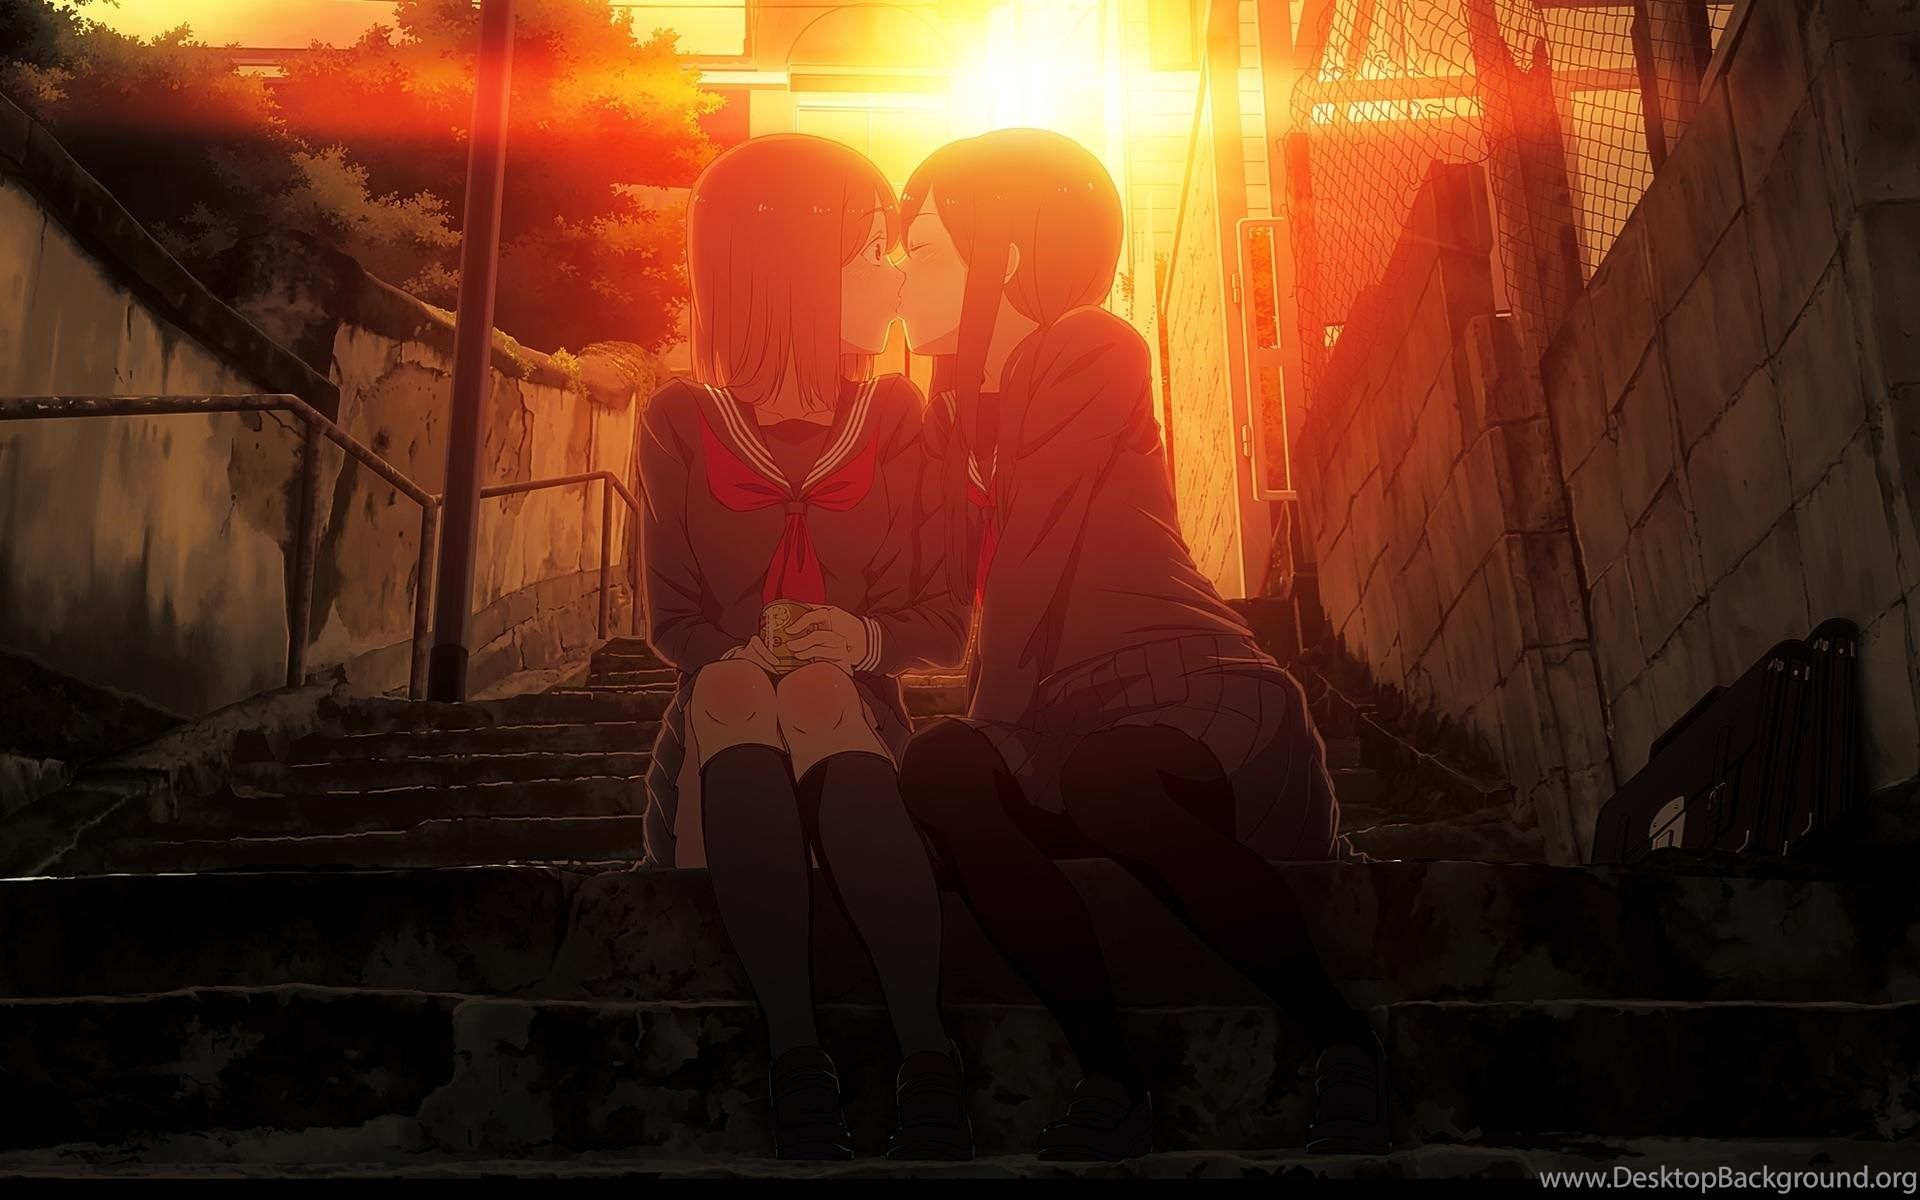 1920x1200 Anime Romance Wallpapers Desktop Background